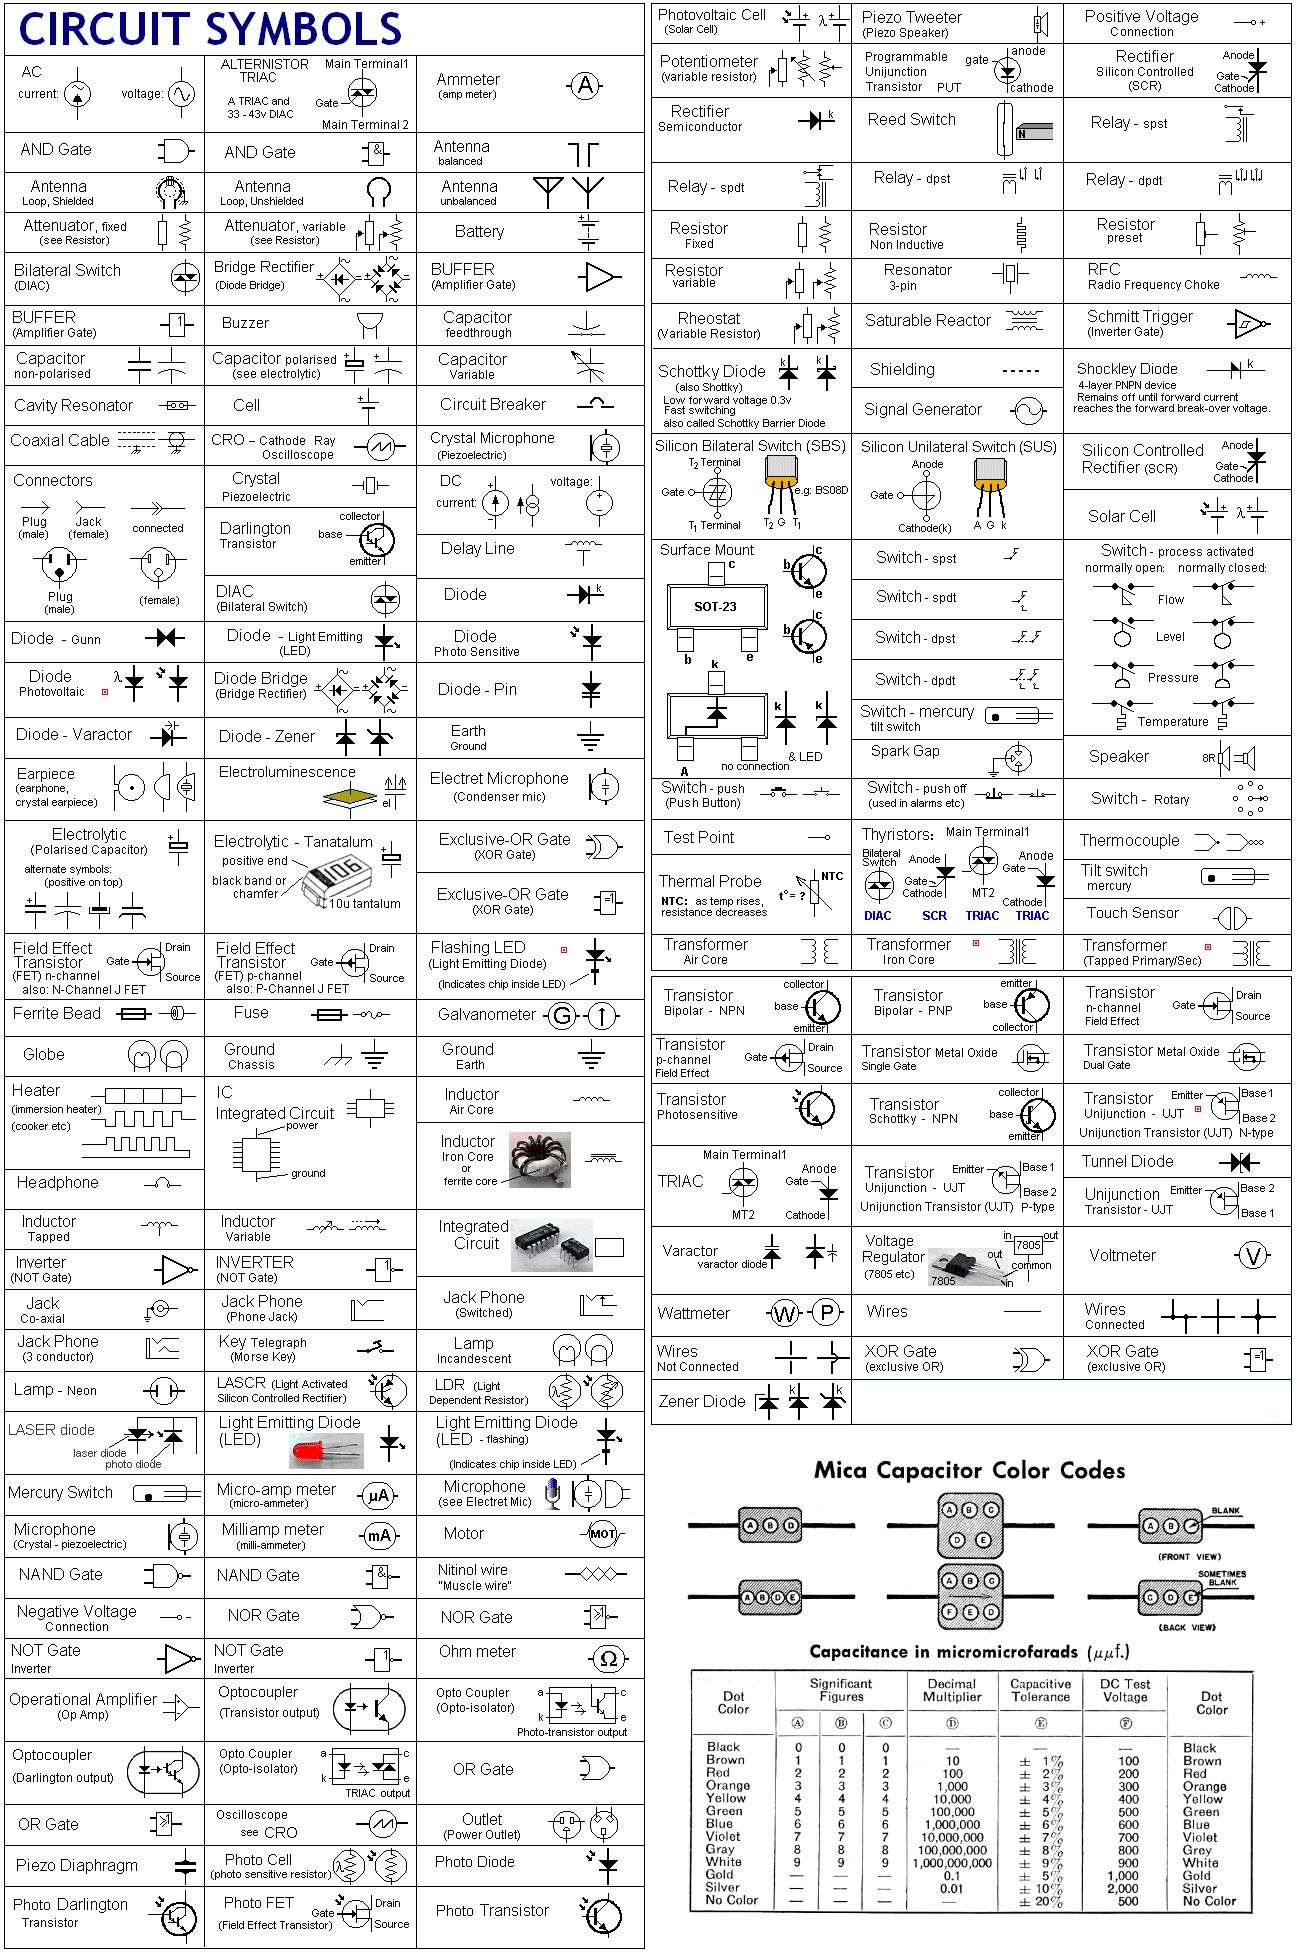 6c64fb84c8e162b28334051891c290f4 schematic symbols chart electric circuit symbols a considerably wiring diagram symbols chart at metegol.co